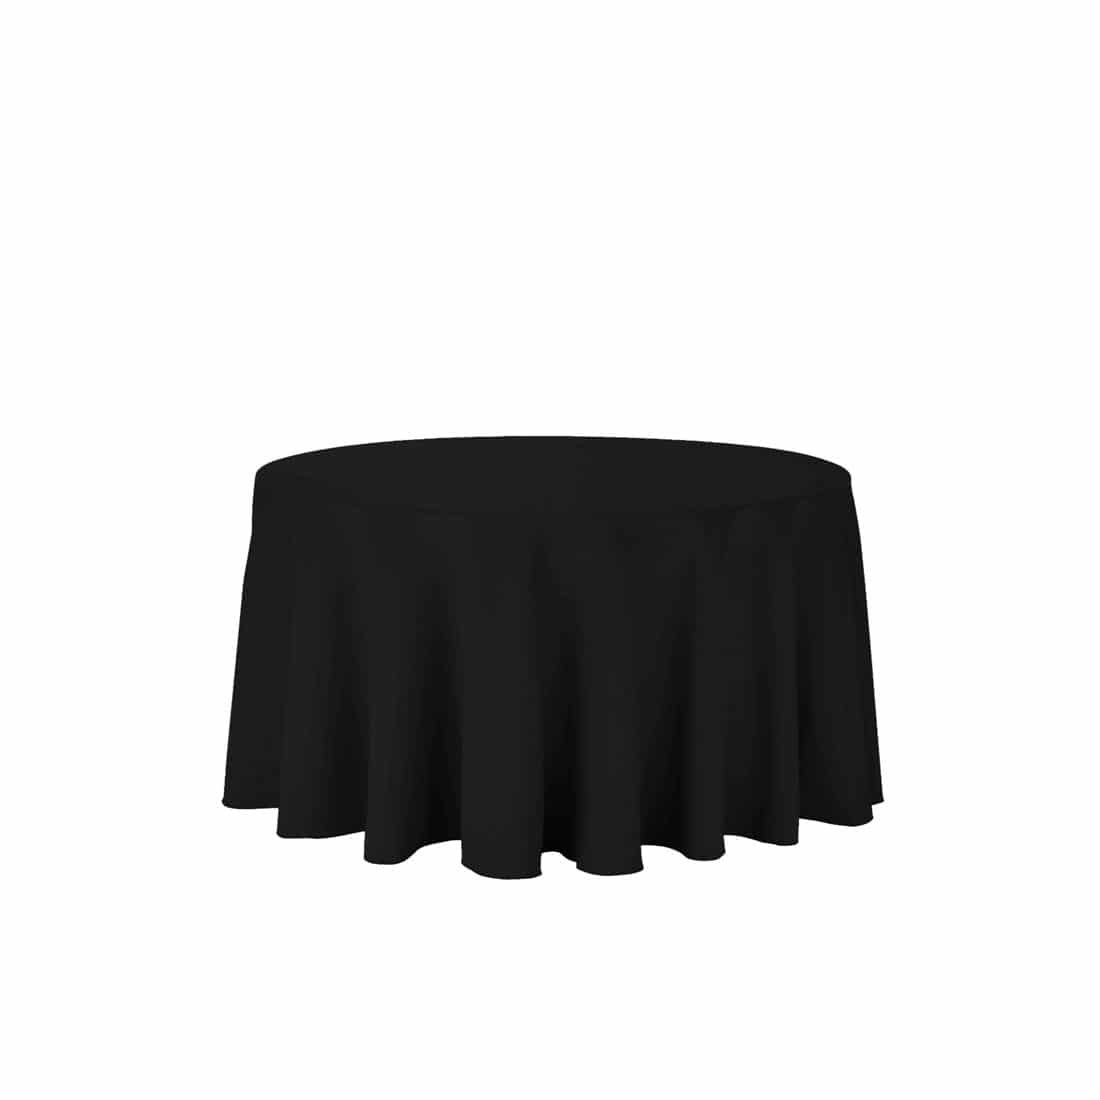 Round Black Tablecloth 108